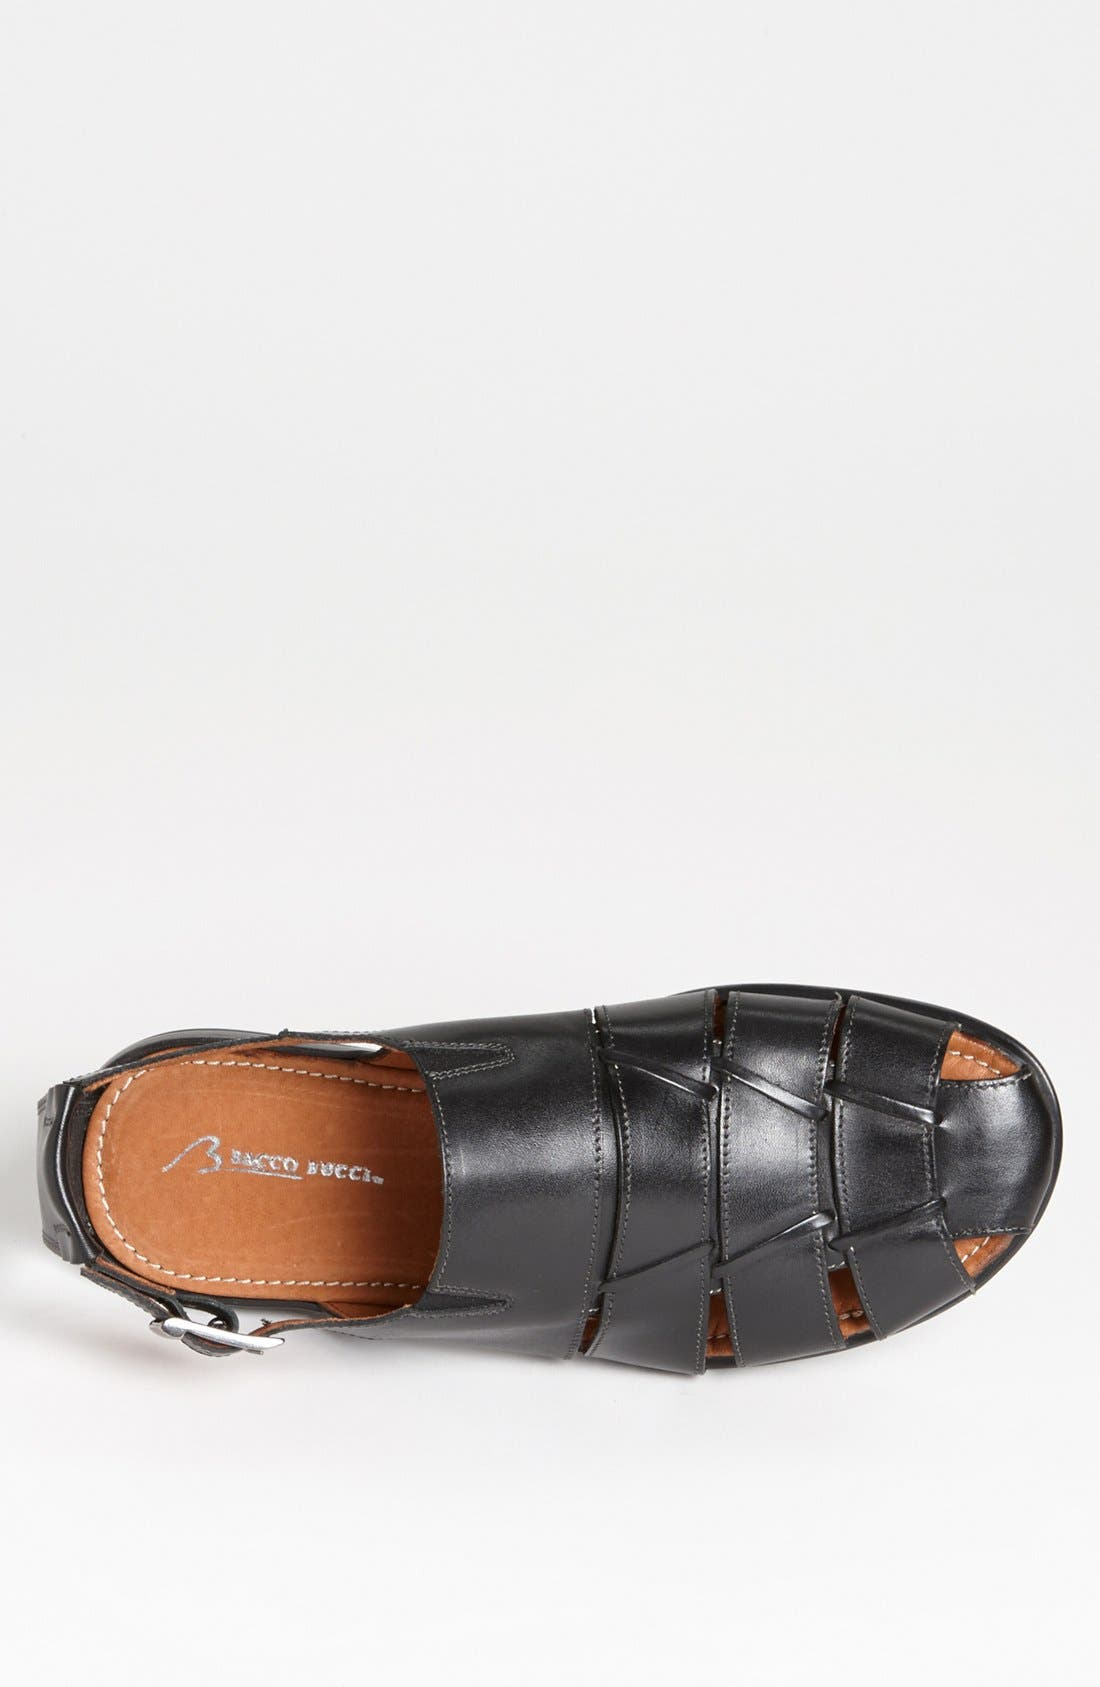 Alternate Image 3  - Bacco Bucci 'Valdano' Sandal (Men)